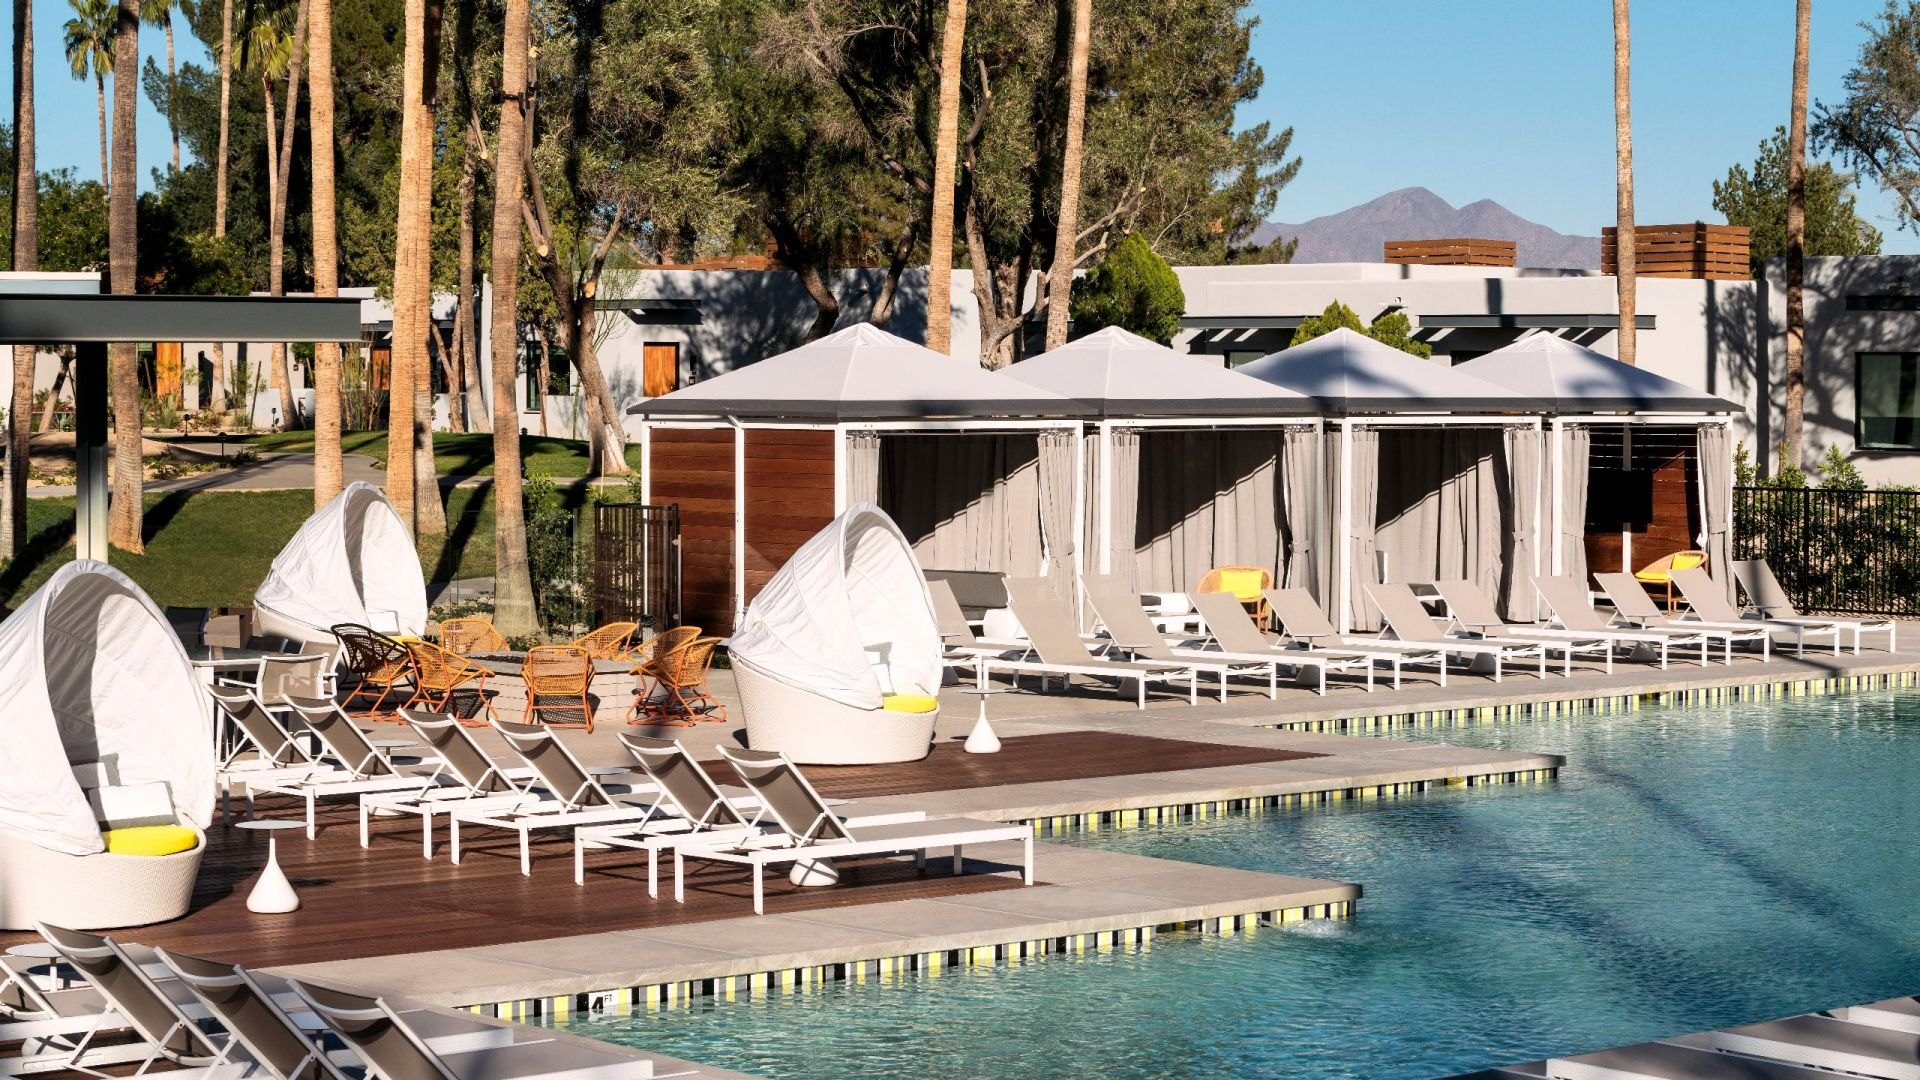 Andaz Scottsdale Resort & Bungalows – Pool Cabanas